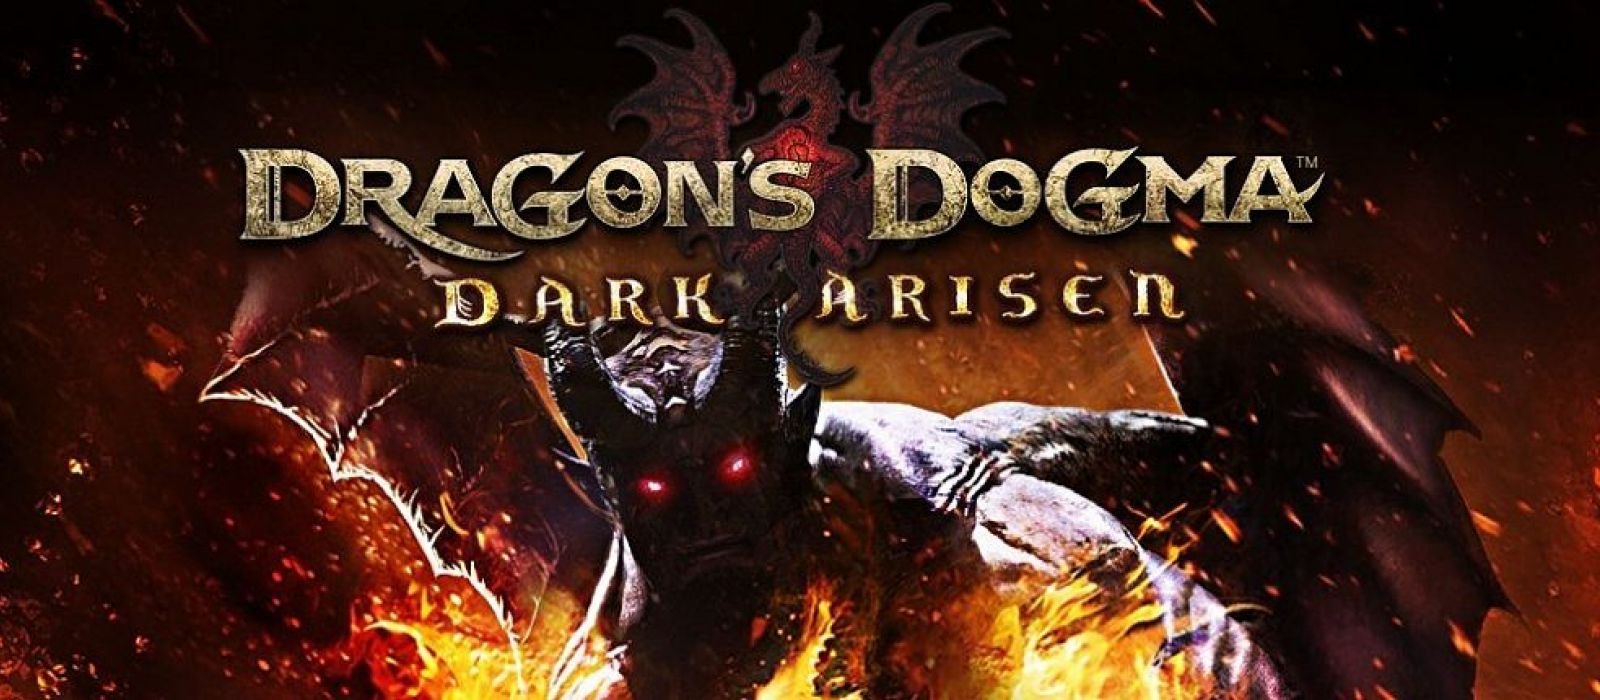 Dragon's Dogma: Dark Arisen выйдет на PS4 и Xbox One